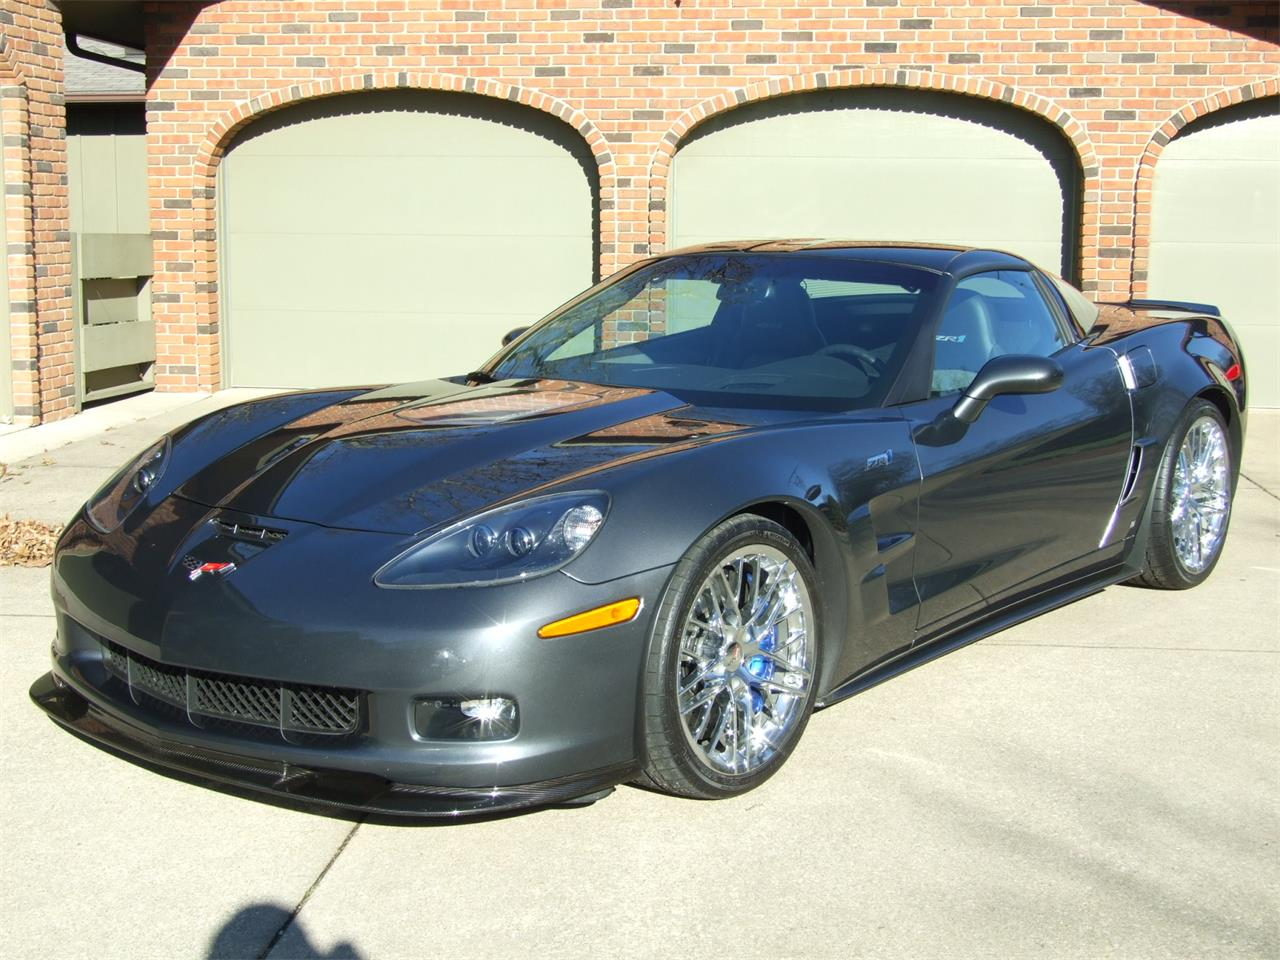 Large Picture of 2009 Chevrolet Corvette ZR1 - $75,000.00 Offered by Auto Connection, Inc. - DJBI